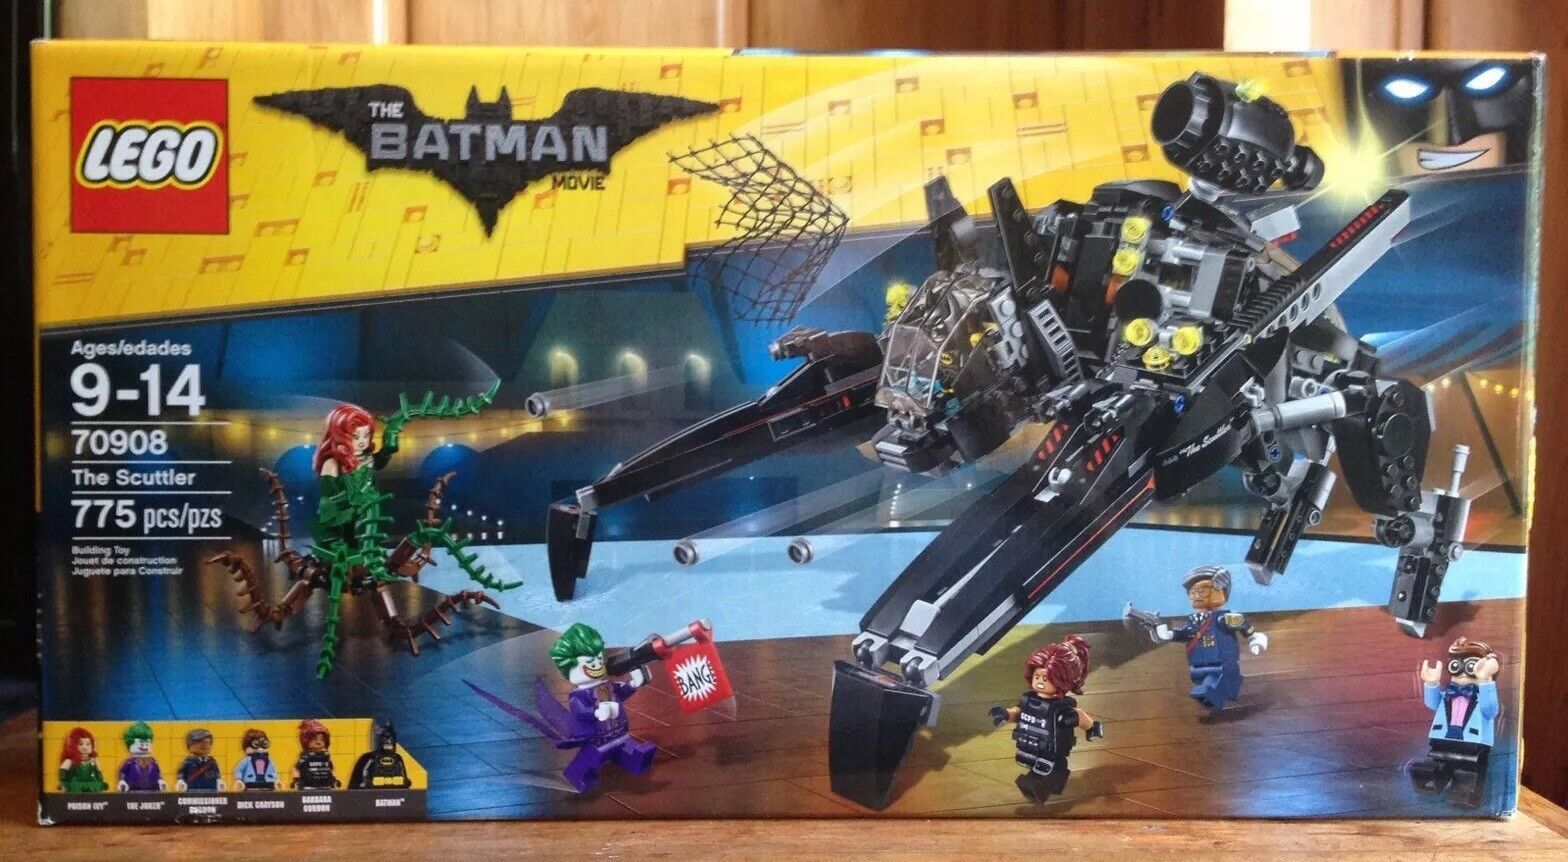 Nqagmy3138 The 100Complet Lego Pieces Batman 775 70908 Scuttler m8vyNnO0w